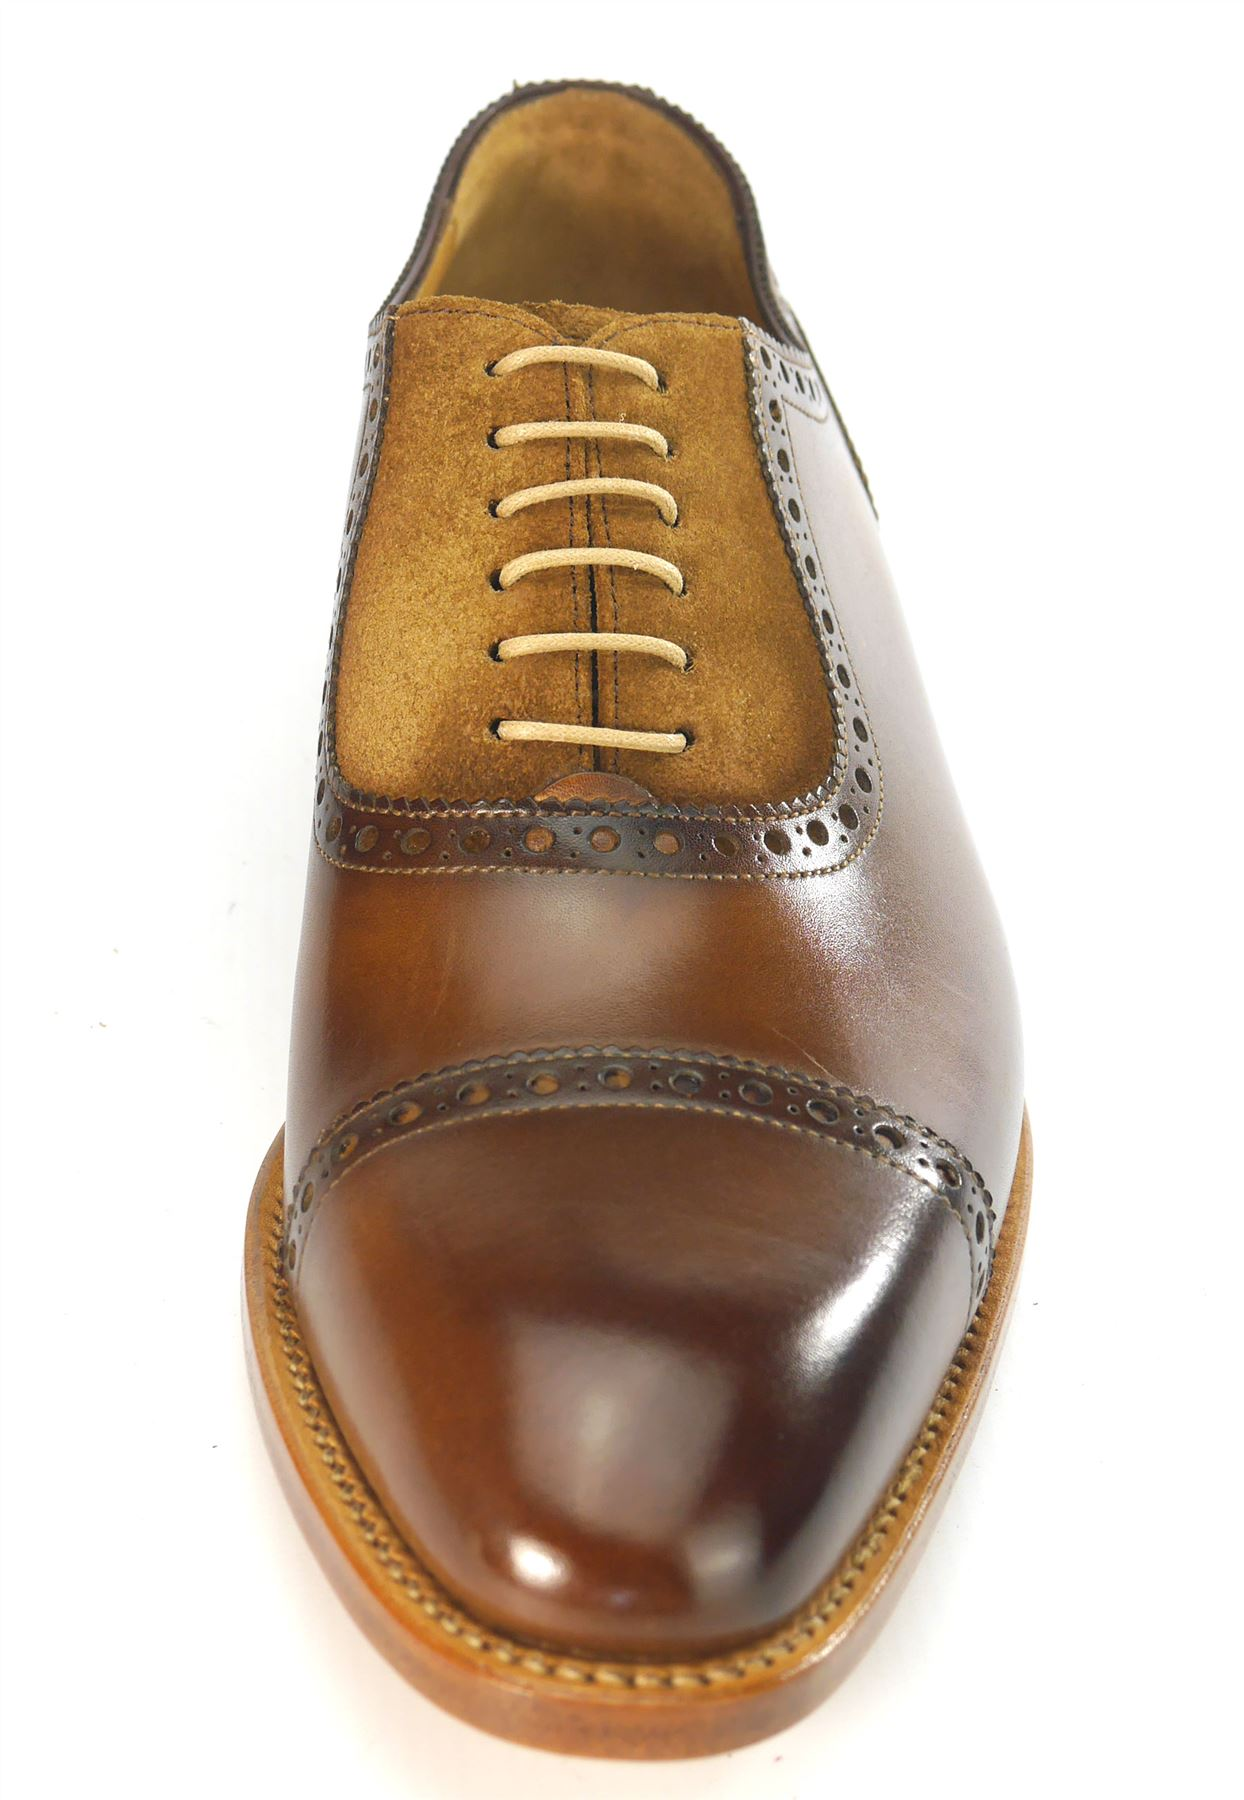 Carlos Santos 4391 Shoes Lace Up Welted All Leather Handmade Shoes 4391 Algarve Brown a37d65